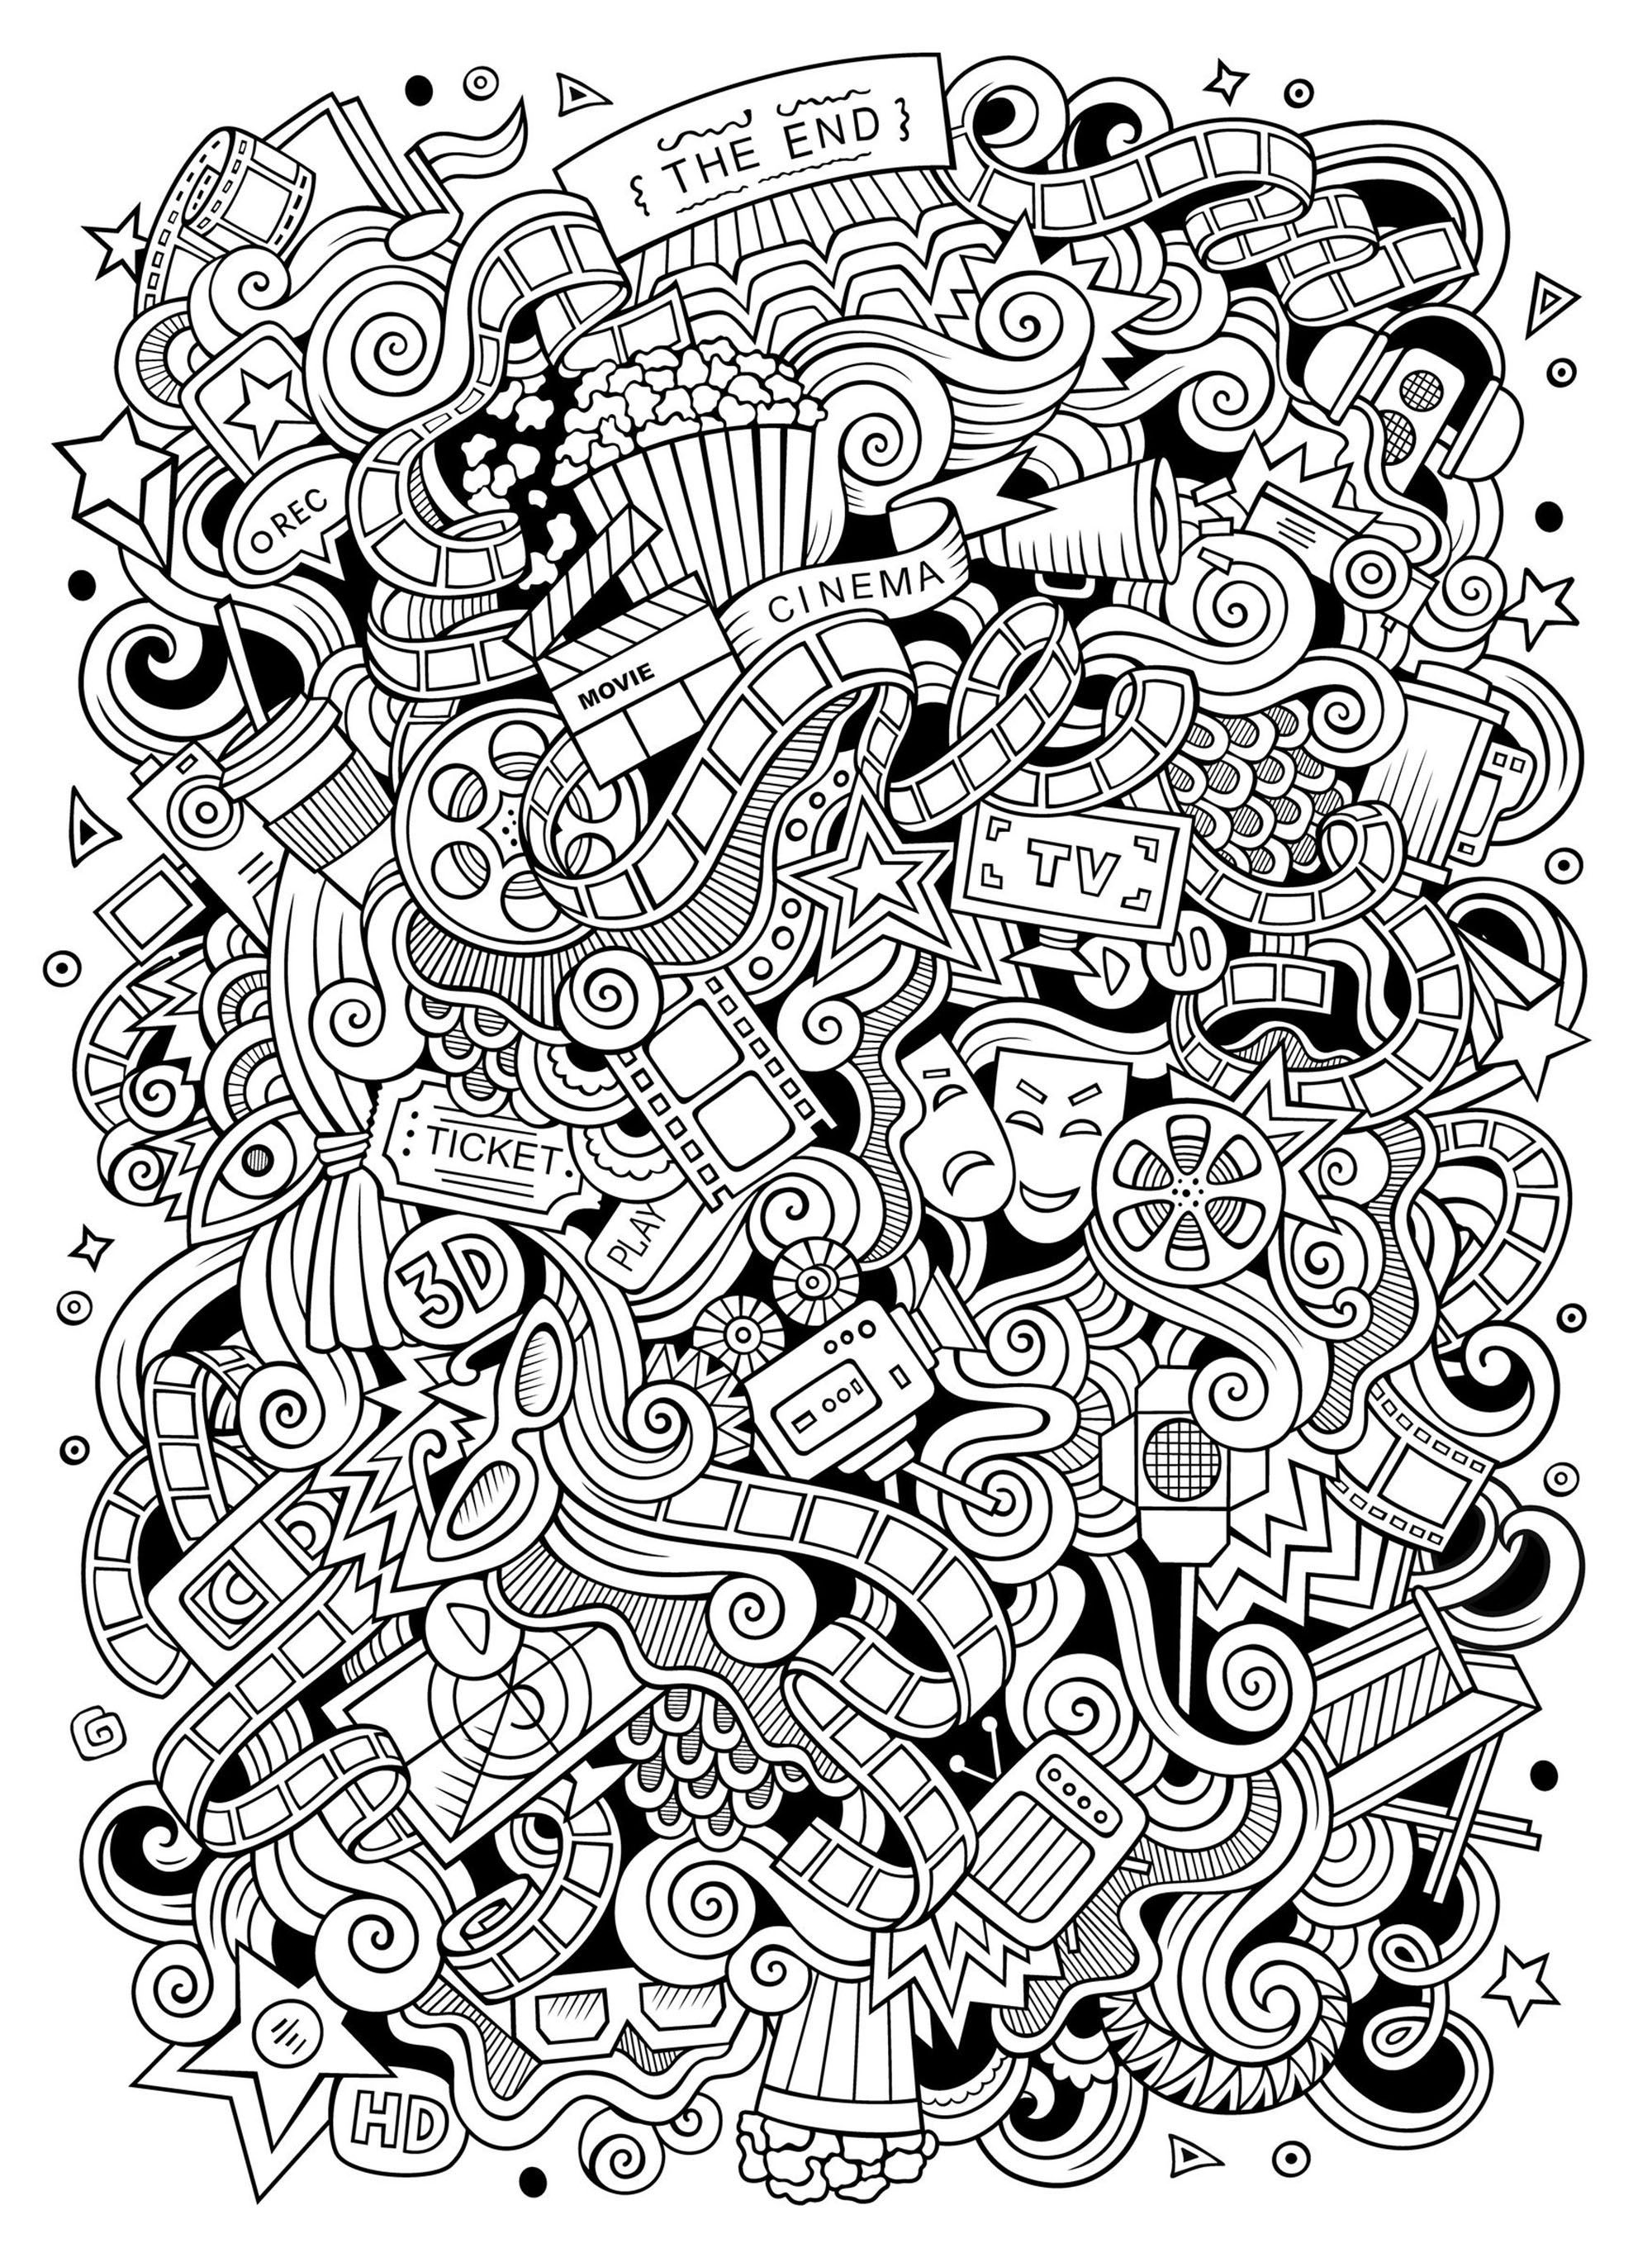 Cinema Doodle Doodle Art Doodling Coloring Pages For Adults